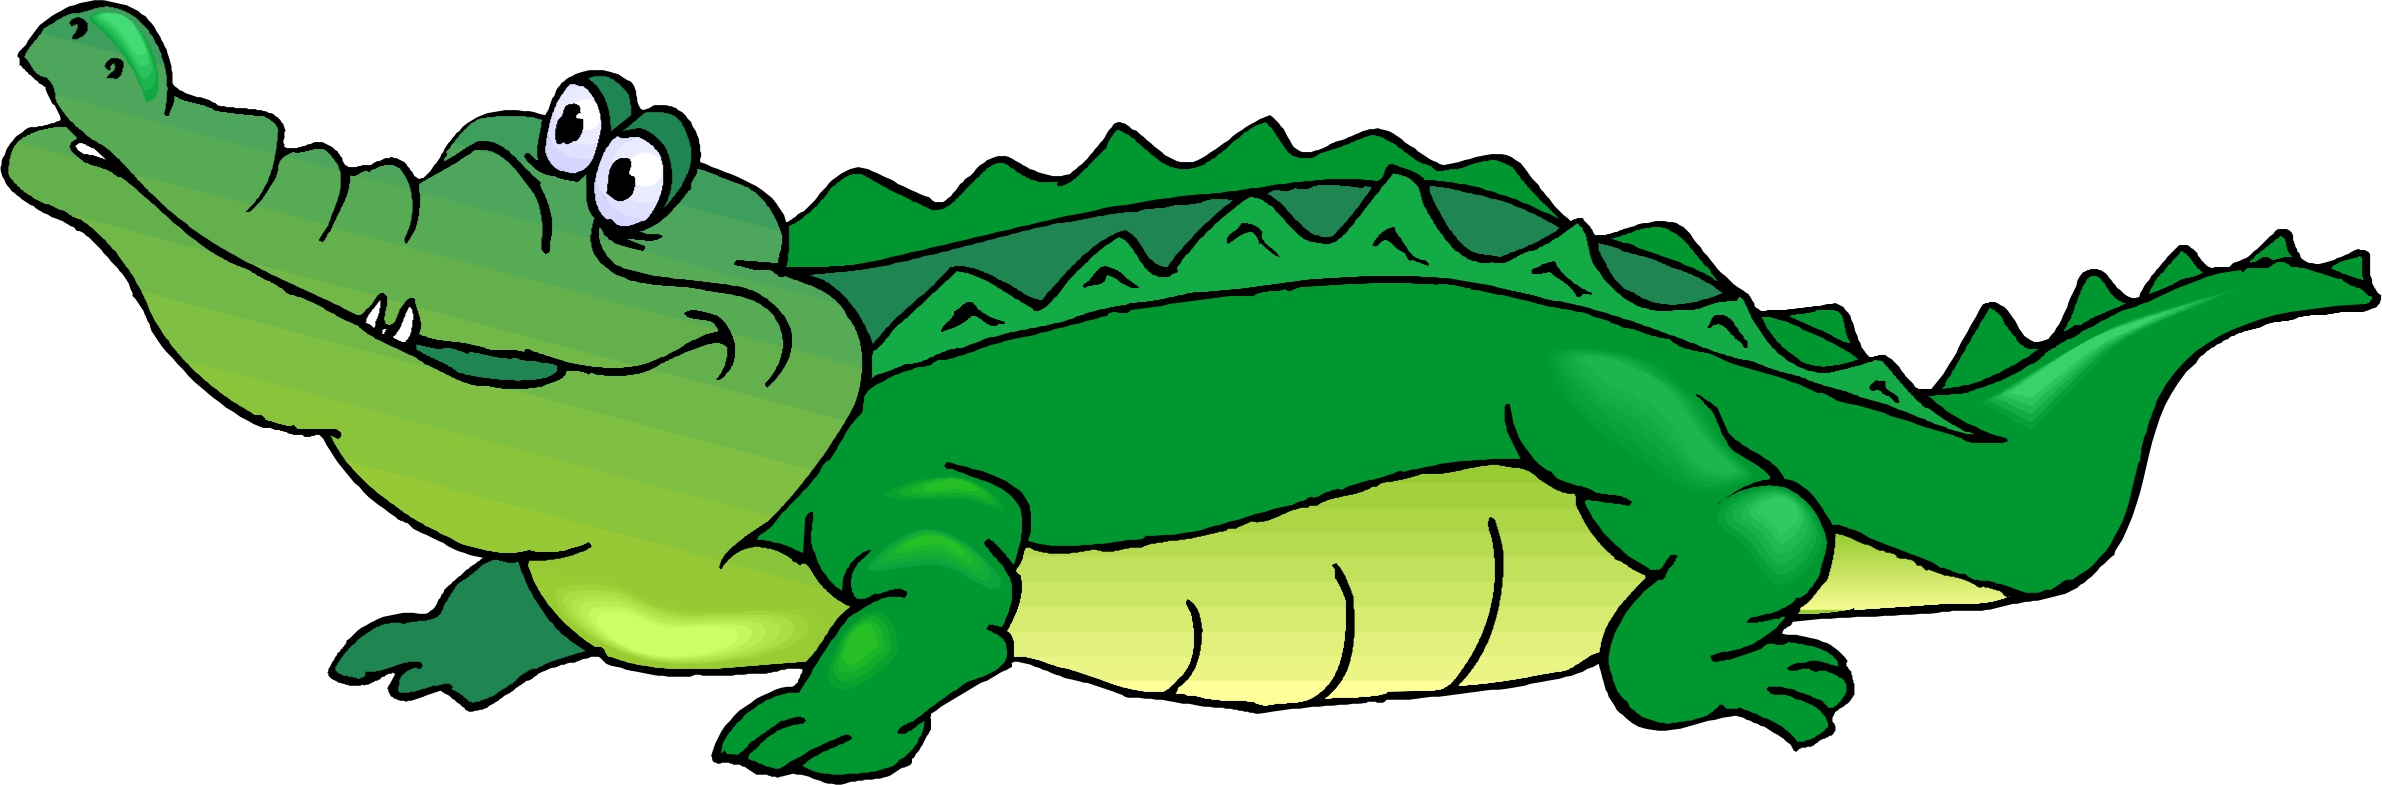 Gator Clip Art | Use These Free Images F-gator clip art | Use these free images for your websites, art projects, reports, and ... | Things to Wear | Pinterest | Clip art, Search and Free images-14